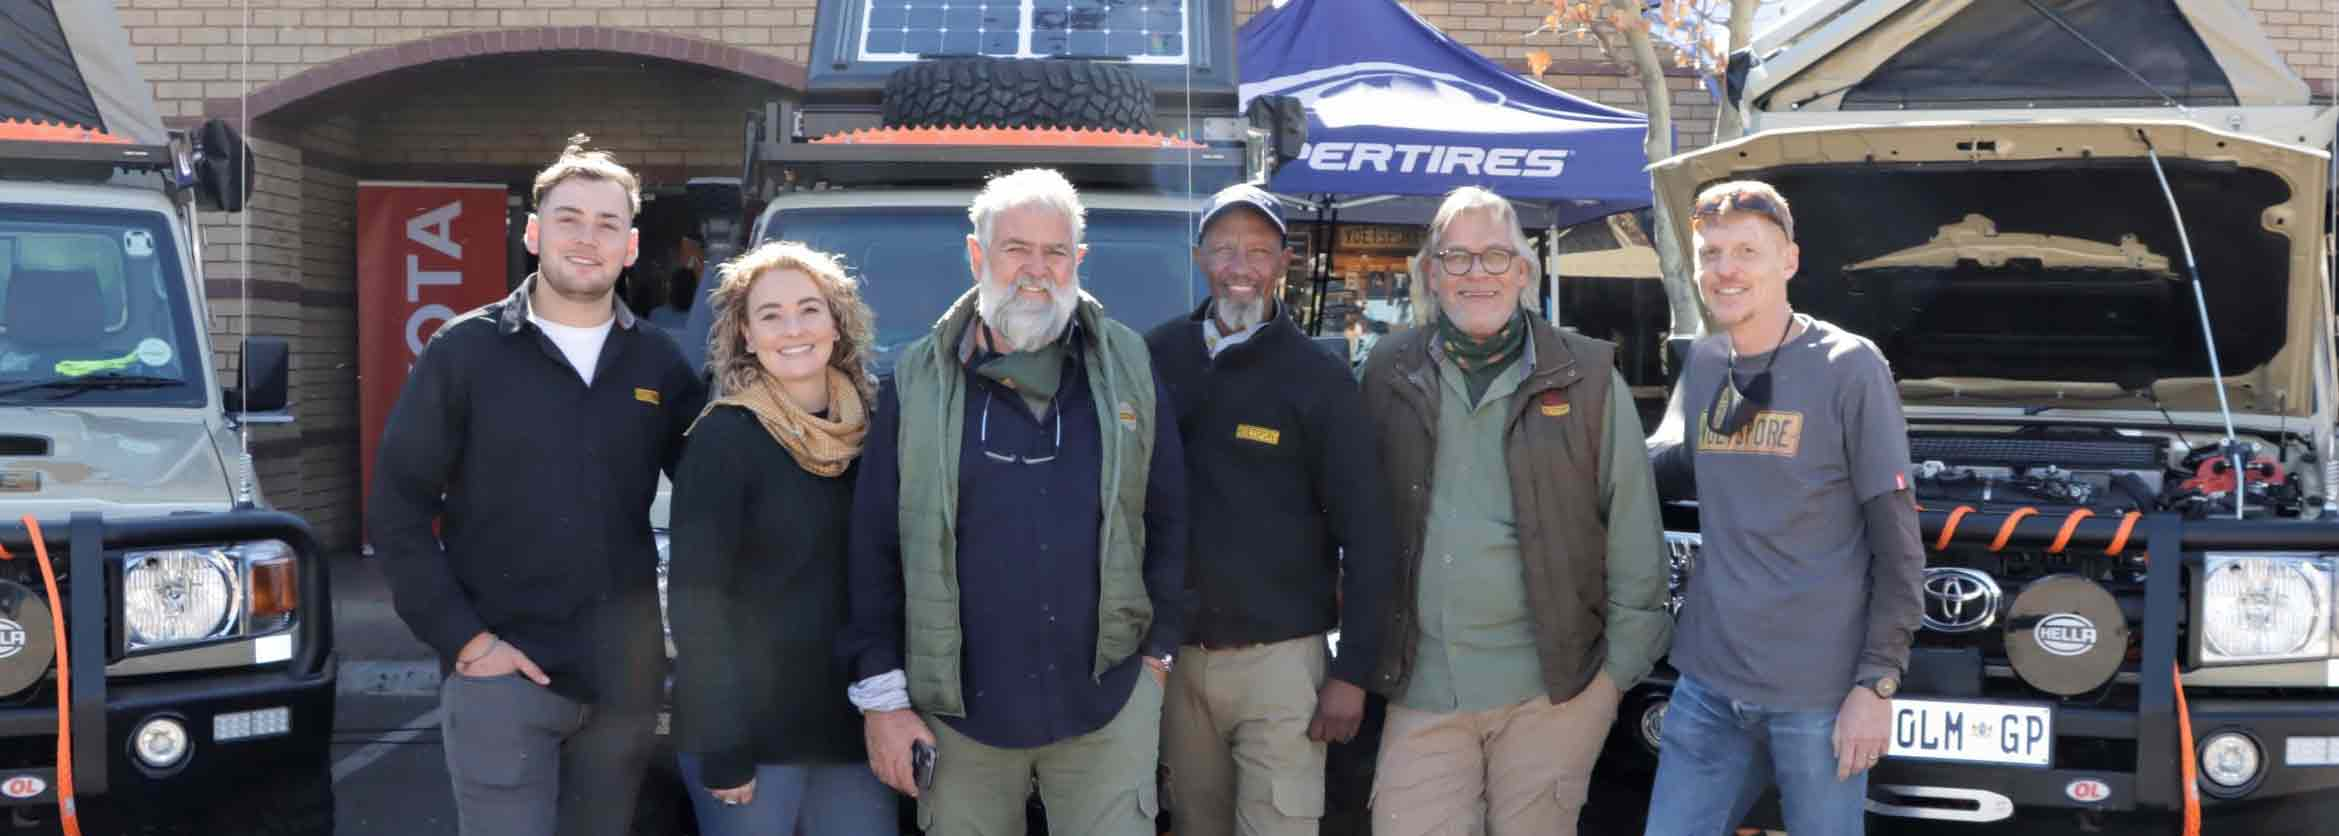 Voetspore team to rely on trio of Land Cruisers for 12000km journey